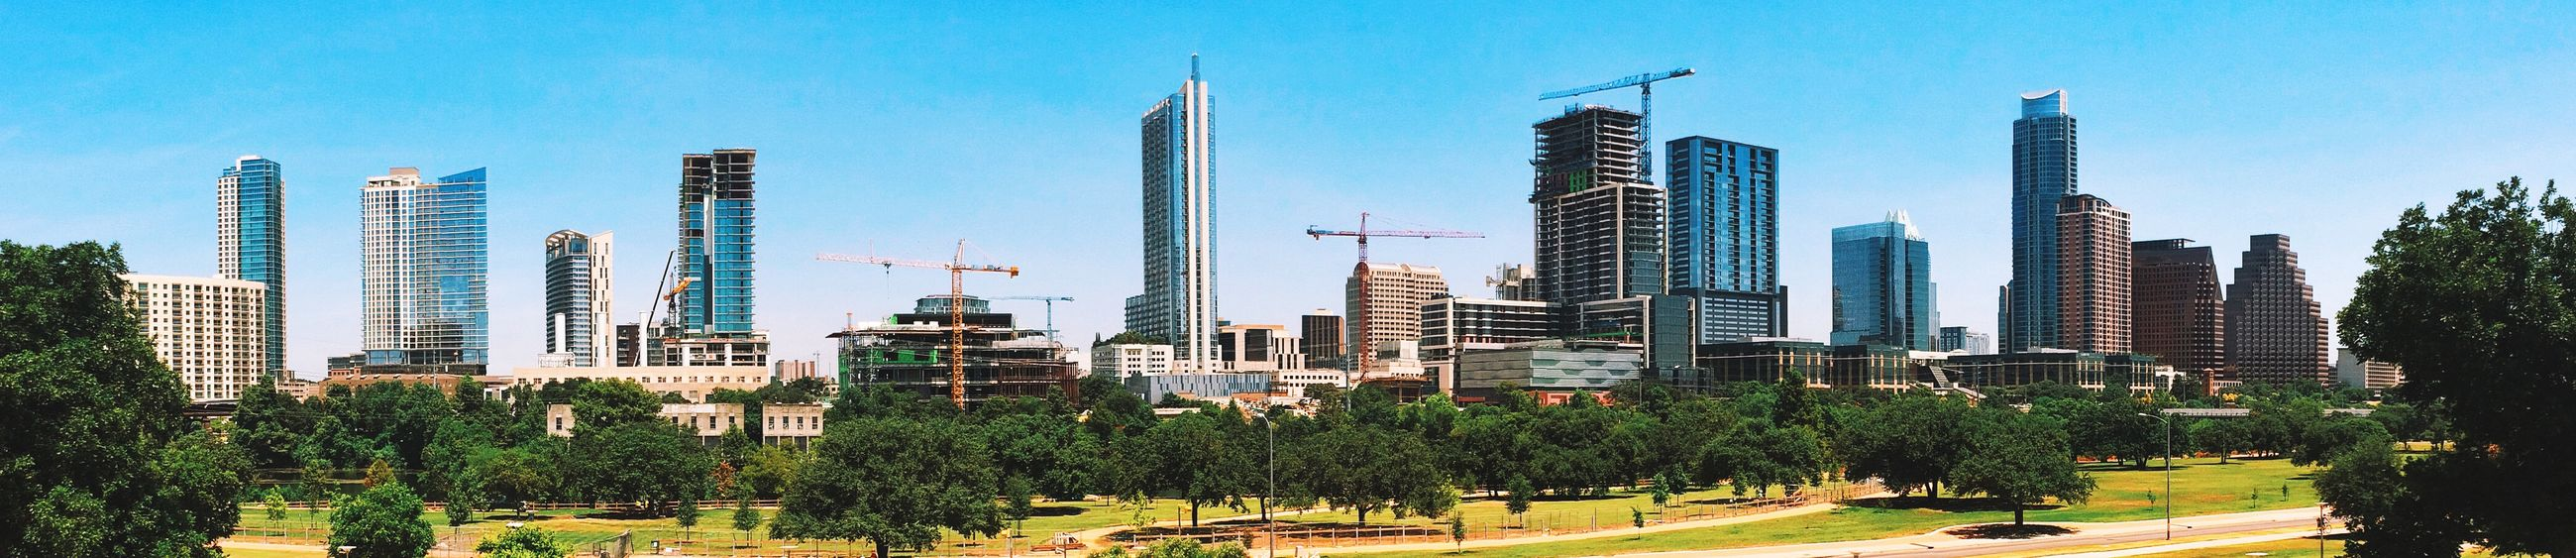 Nothing but blue skies from now on. Austin Texas IPhoneography Cityscapes EyeEm Best Shots Taking Photos Enjoying The Sun Architecture Beautiful Day Hello World